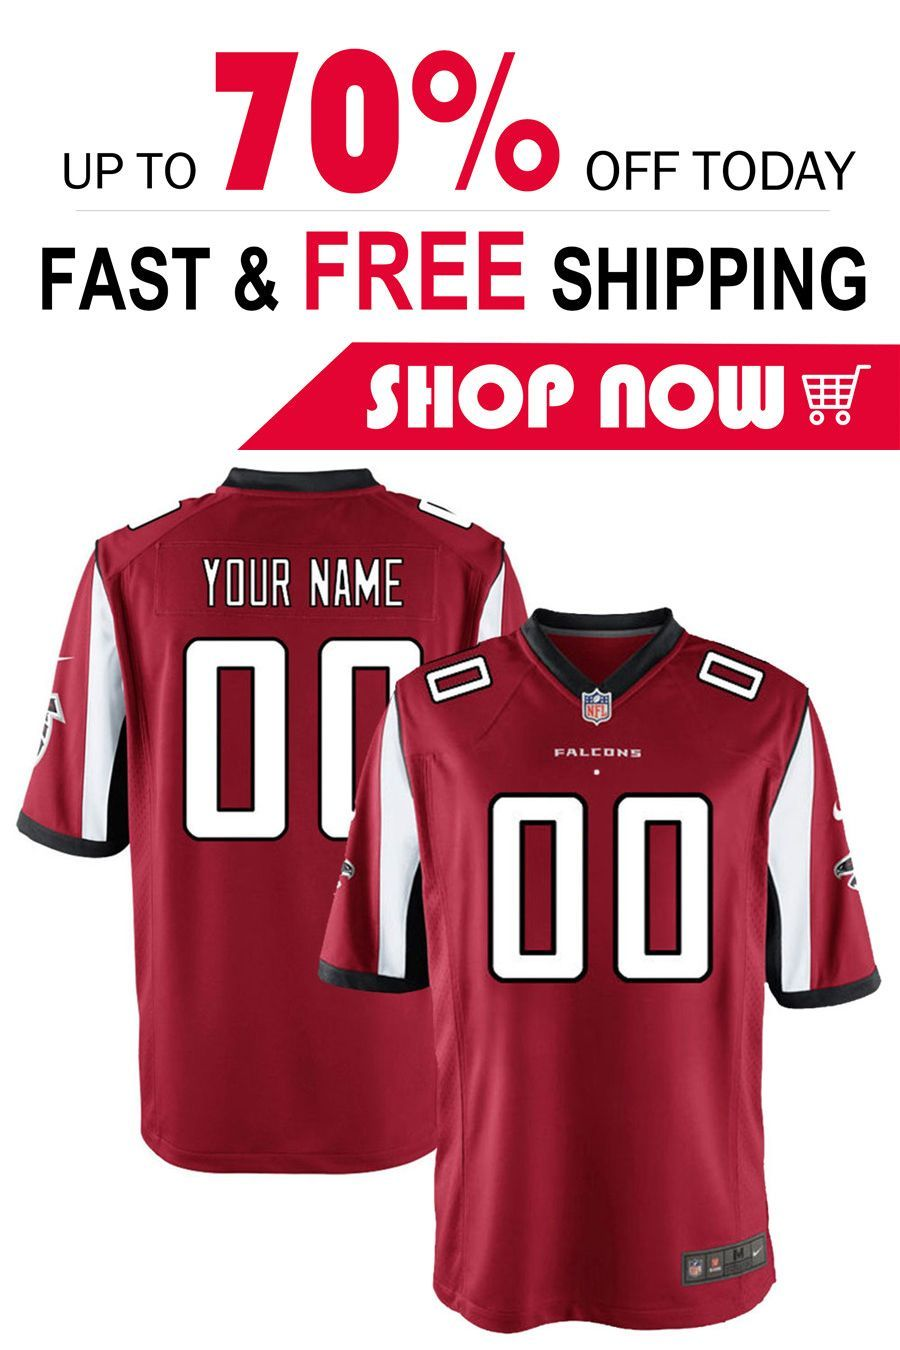 Pin By Mamacitasam On Nfl Jersey Custom Football Atlanta Falcons Football